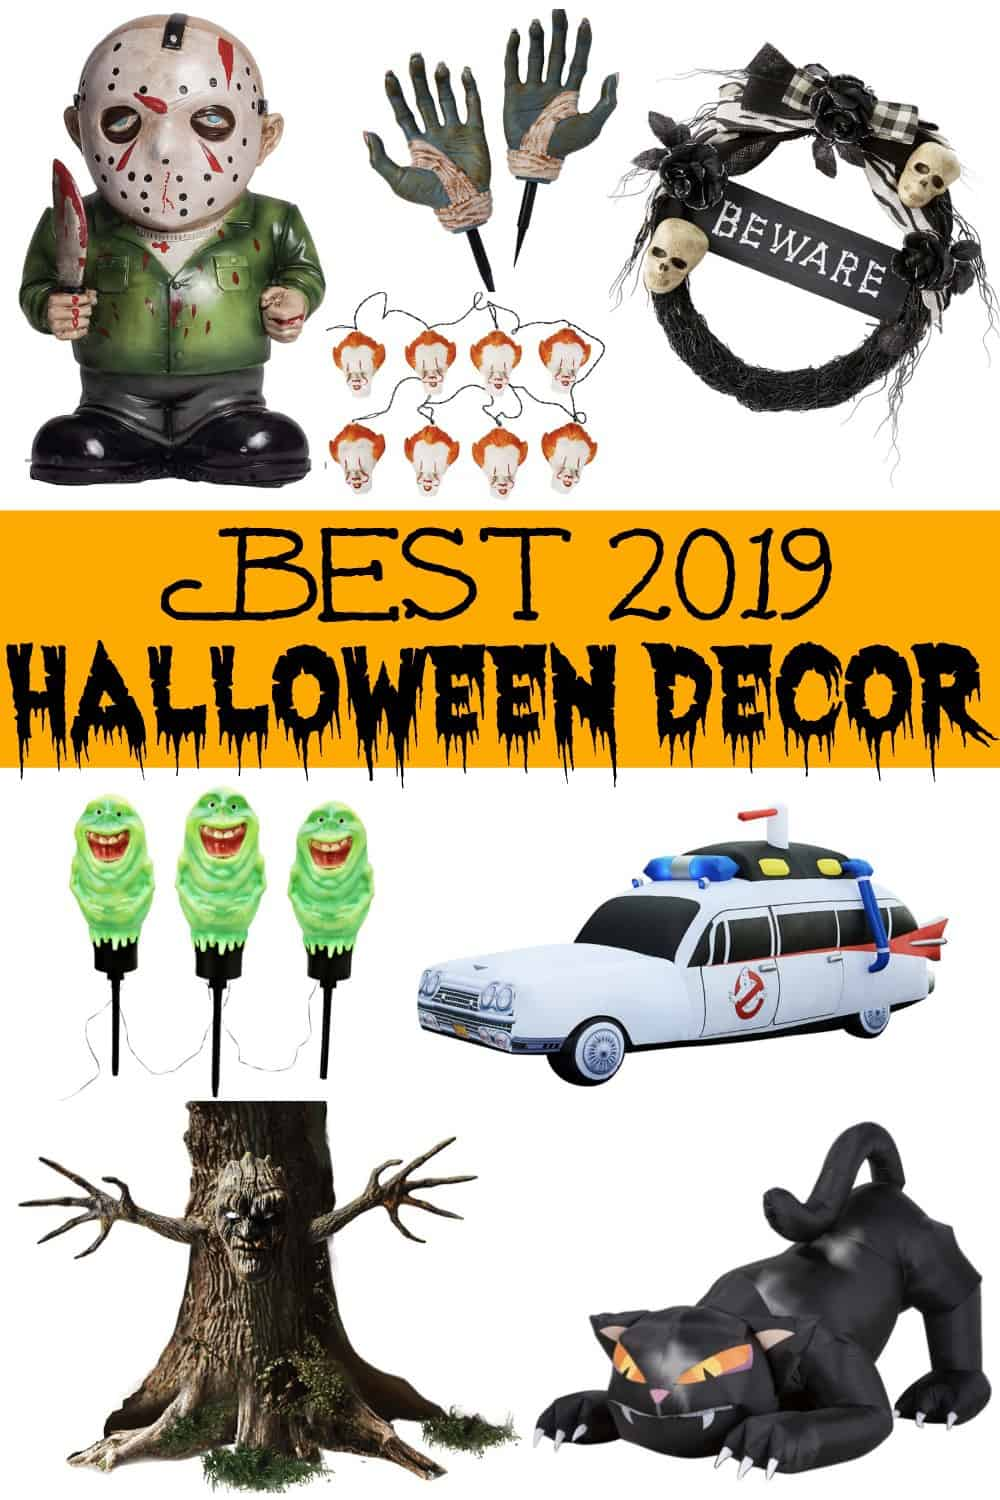 Best outdoor halloween decorations pinterest pin.